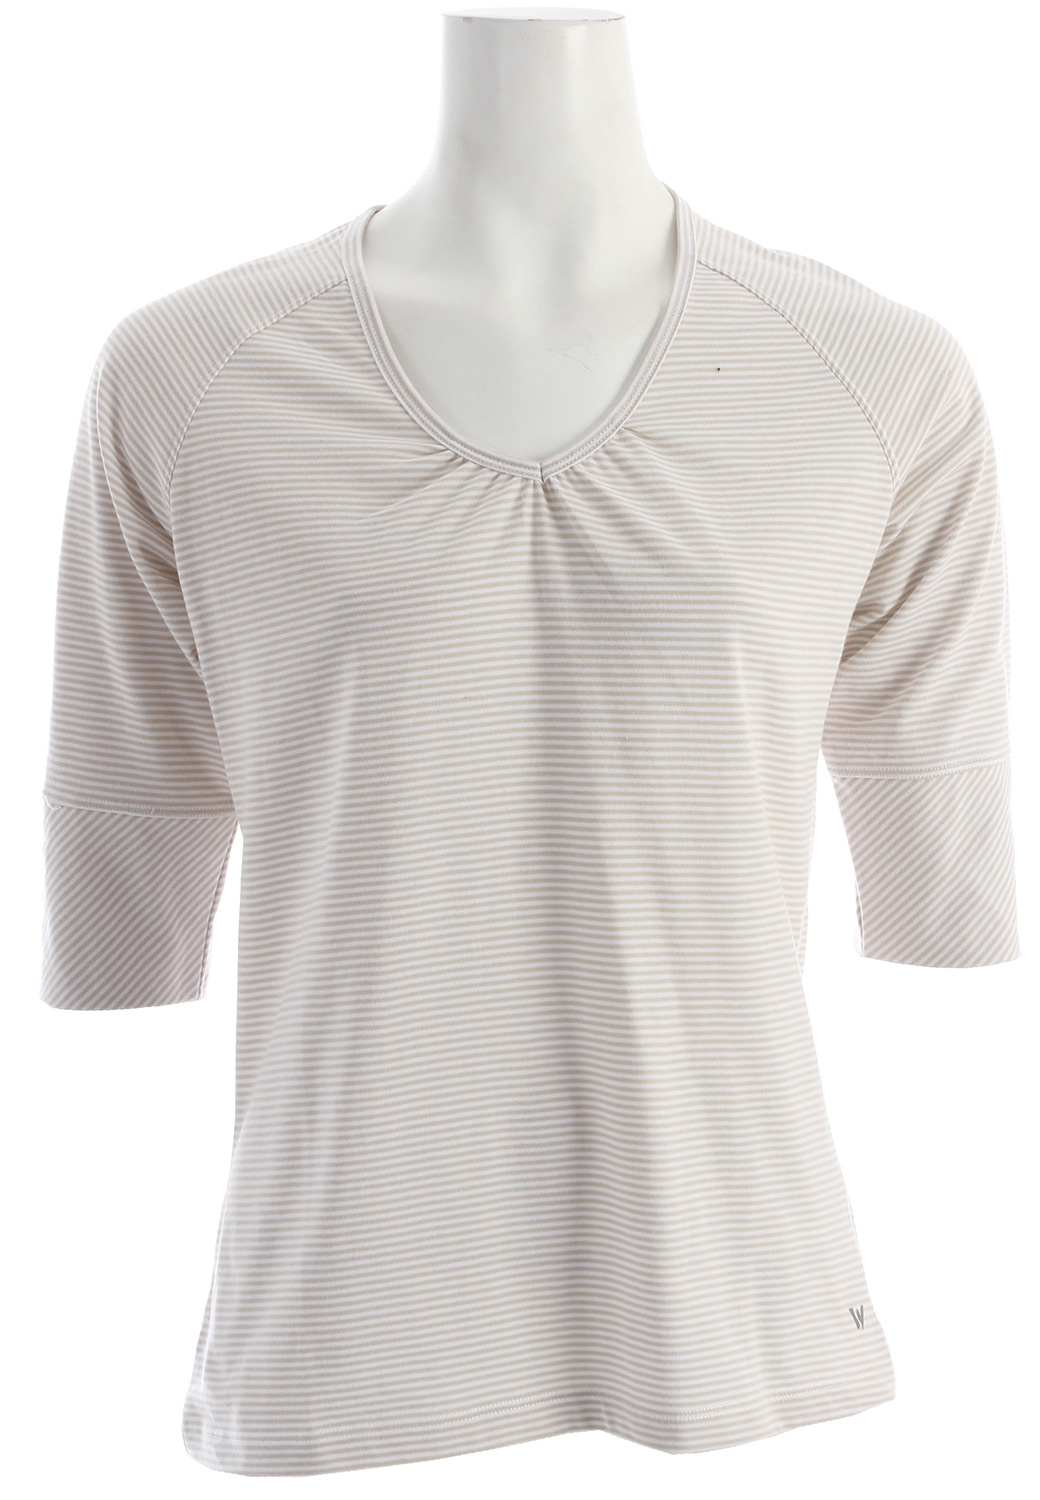 White Sierra Sunlit Stripey 3/4 Sleeve T-Shirt - $19.95